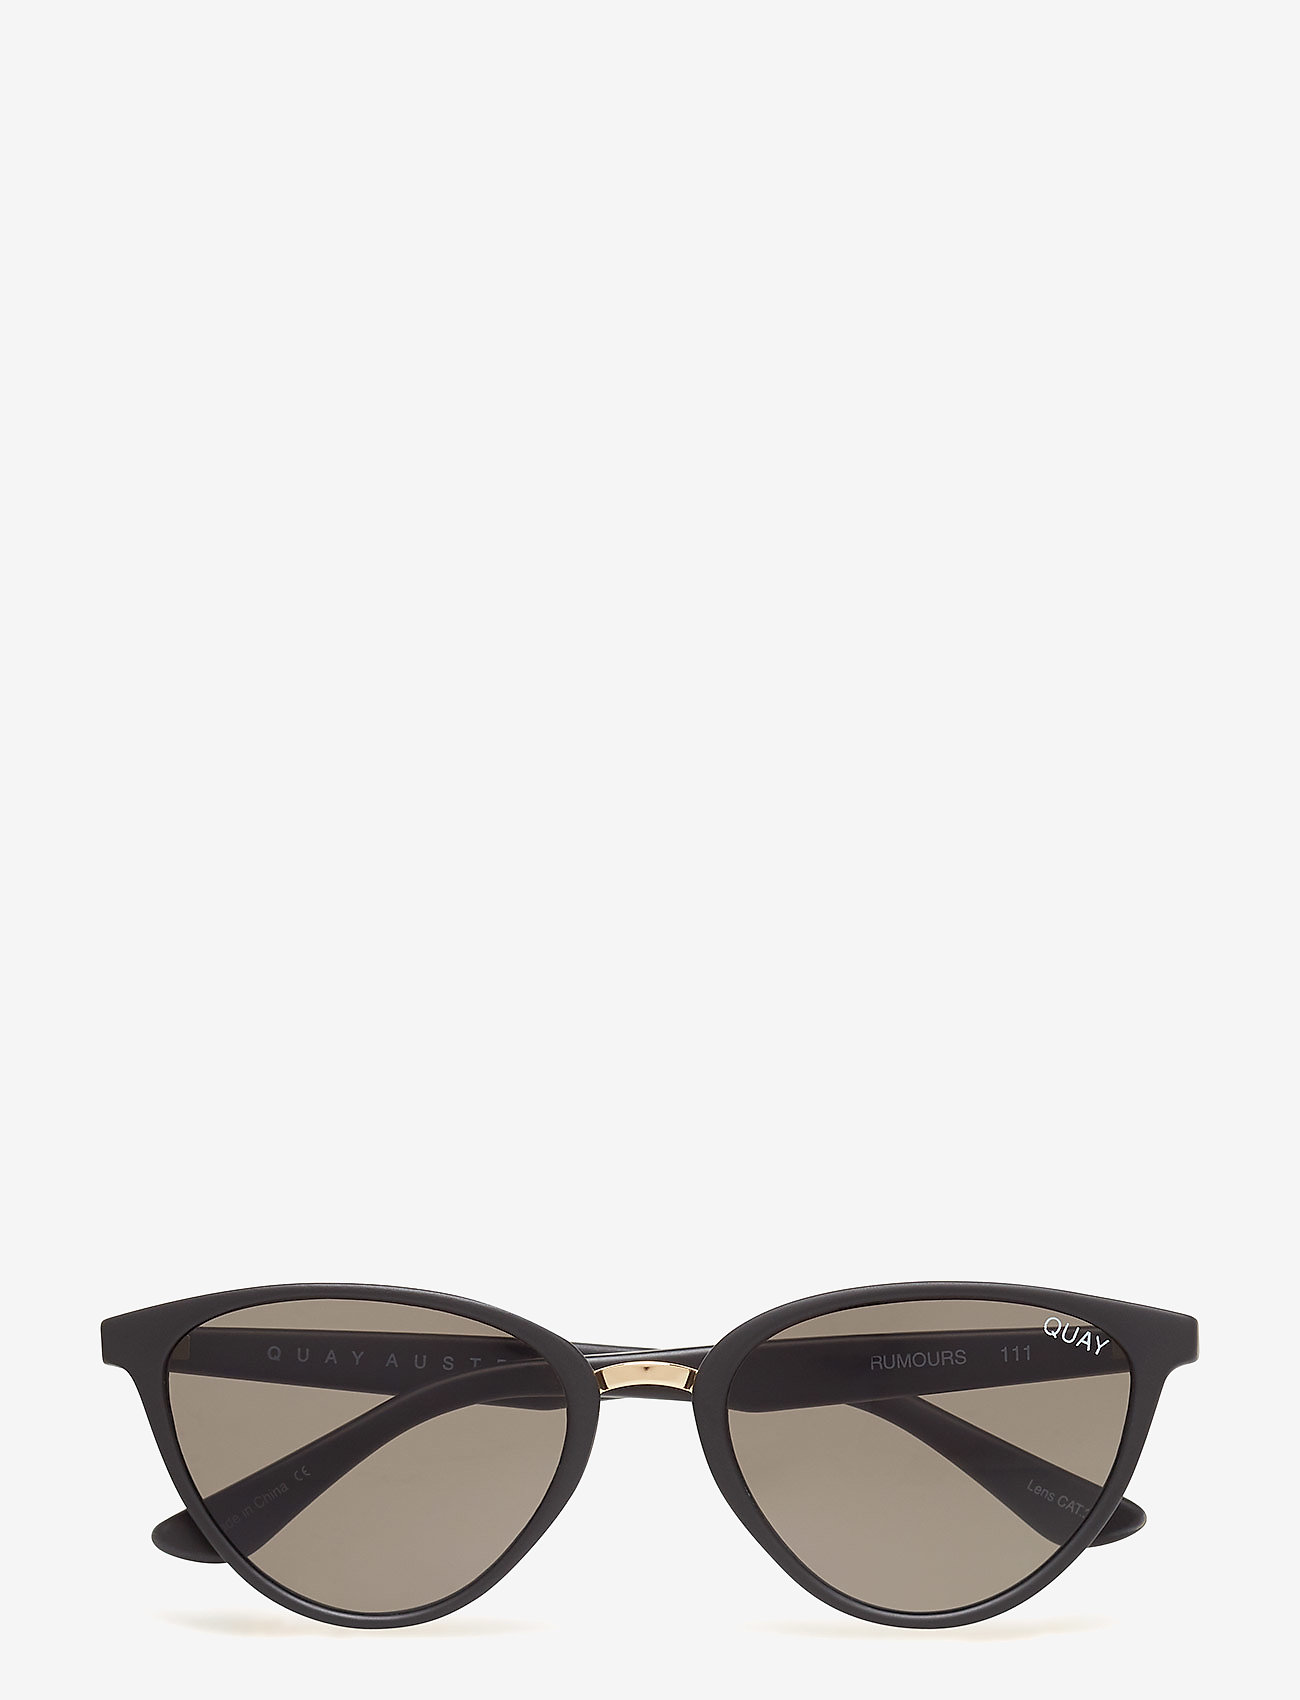 QUAY AUSTRALIA - RUMOURS - cat-eye - black / smoke lens - 0